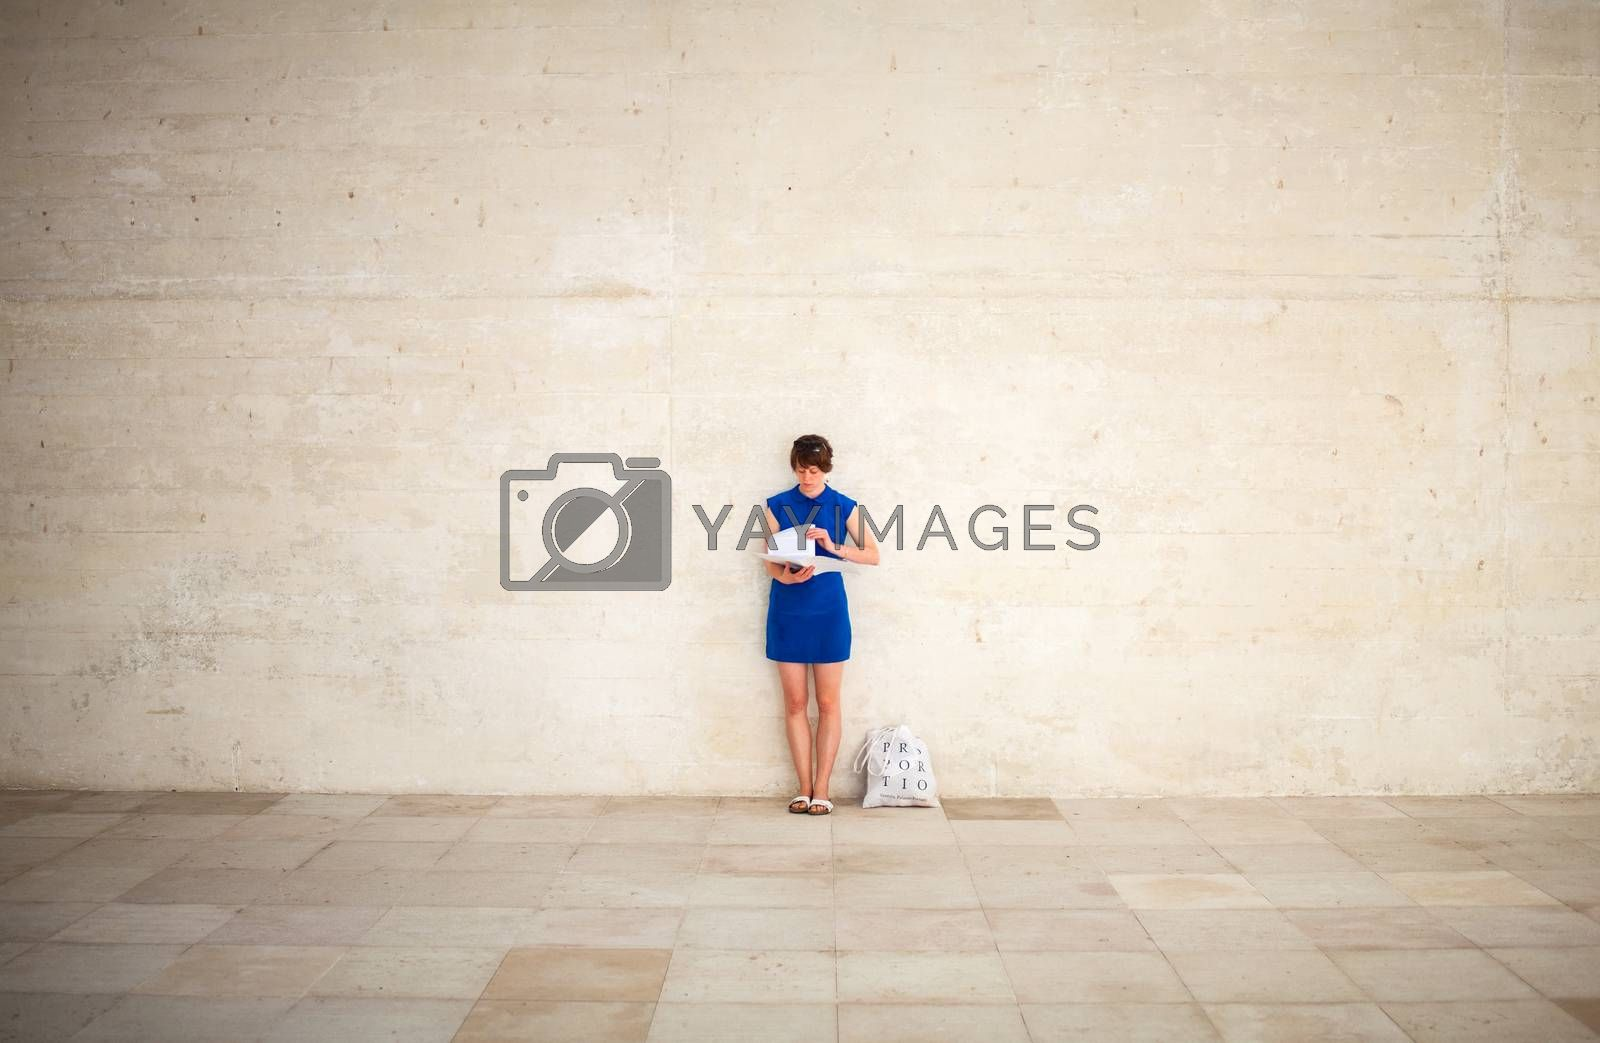 VENICE, ITALY - MAY 06: Girl leaning against the wall reading during the 56th Venice Biennale on May 06, 2015